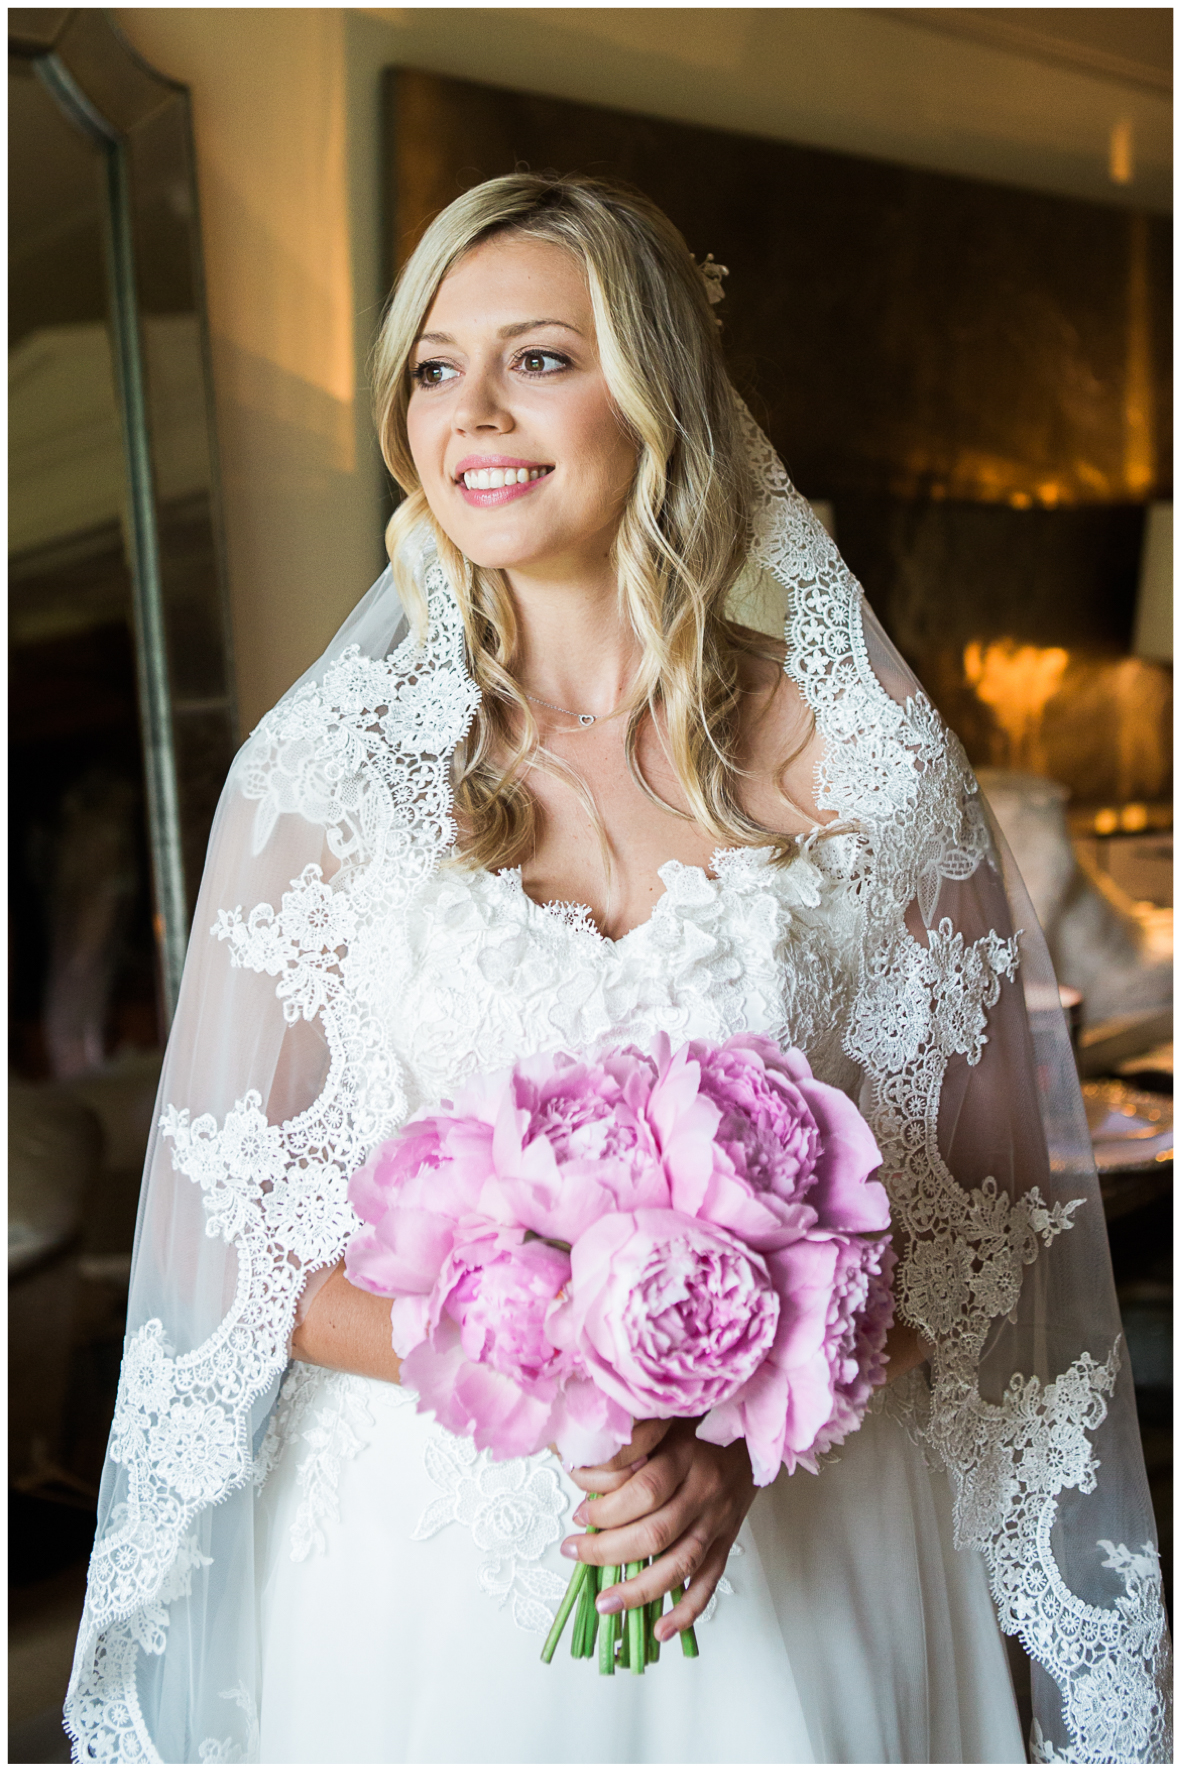 Aynhoe Park, bride wearing wedding dress, veil, peony bouquet